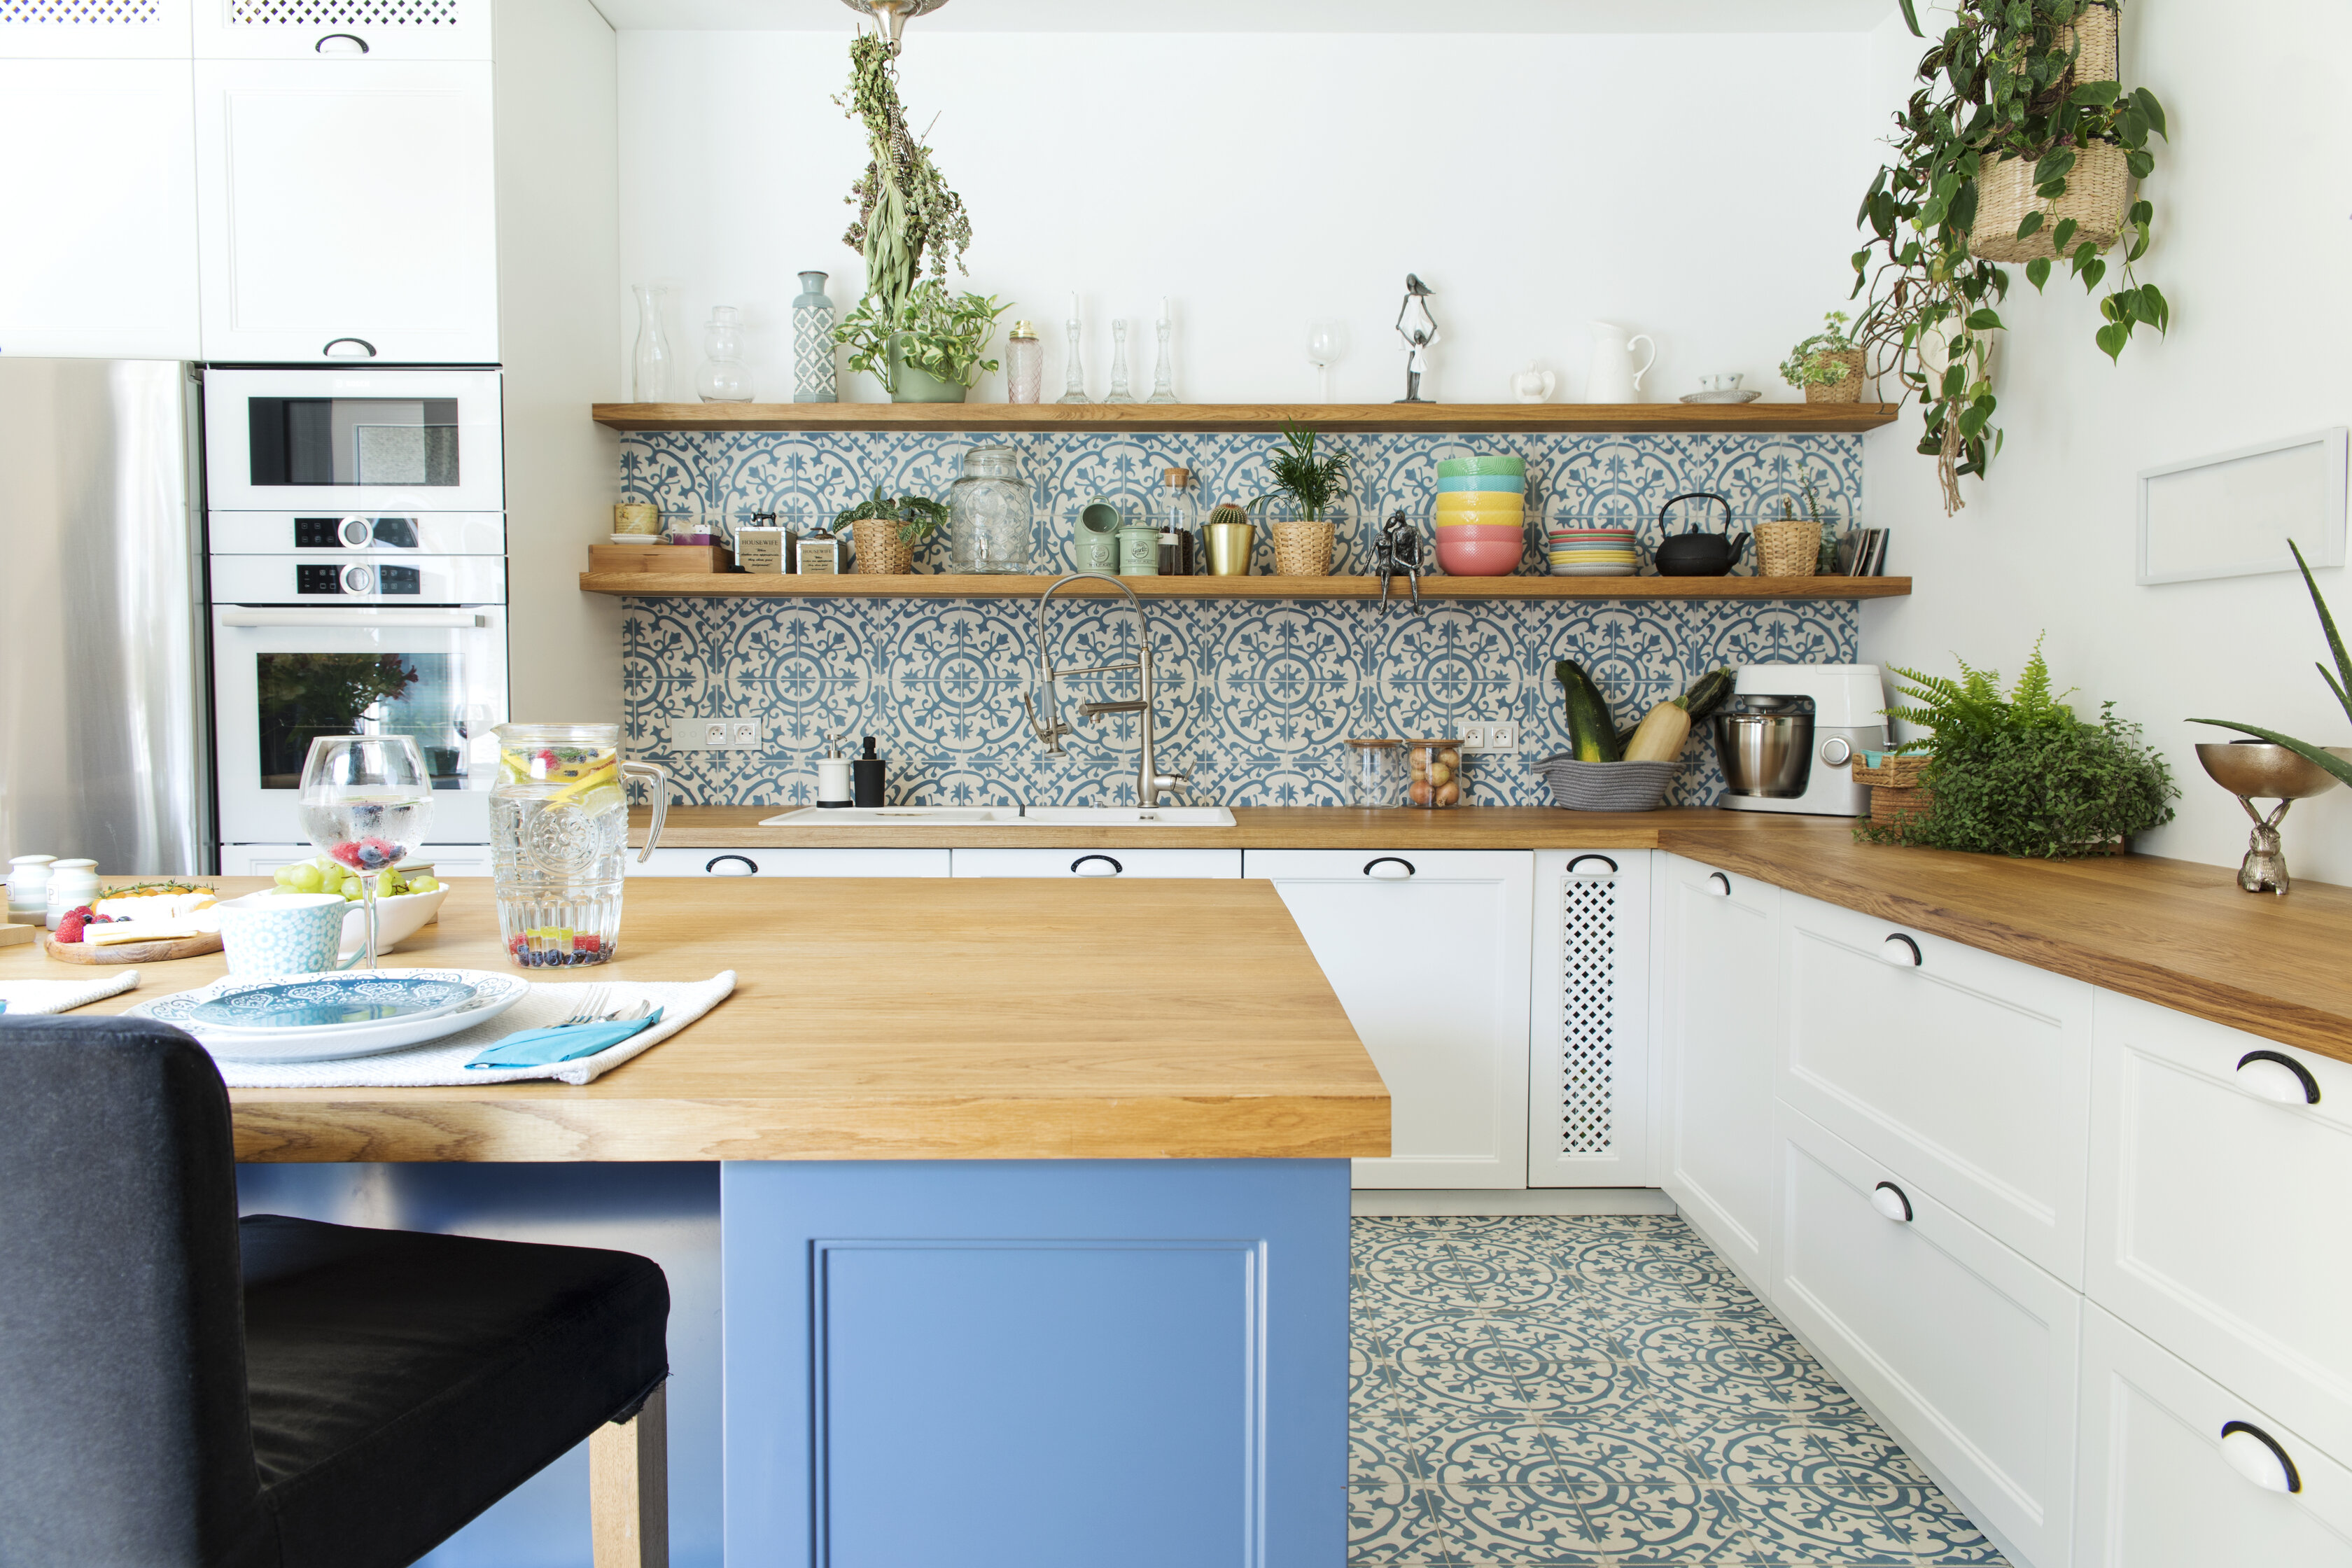 Kitchen with wood countertop, blue detailing, blue backsplash, and several houseplants.